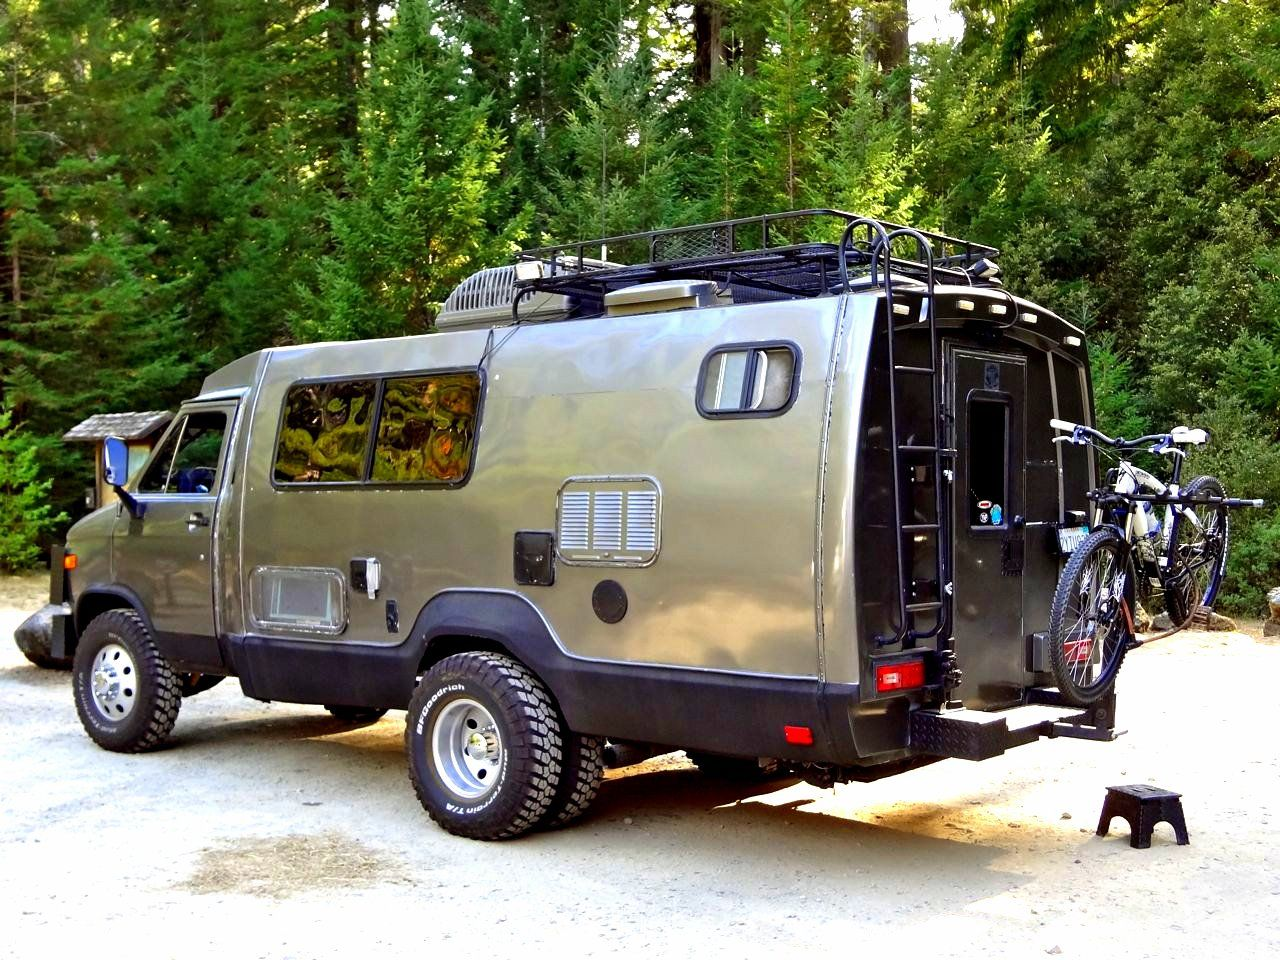 When you re seriously serious about all terrain freedom camping a series if off road rv s